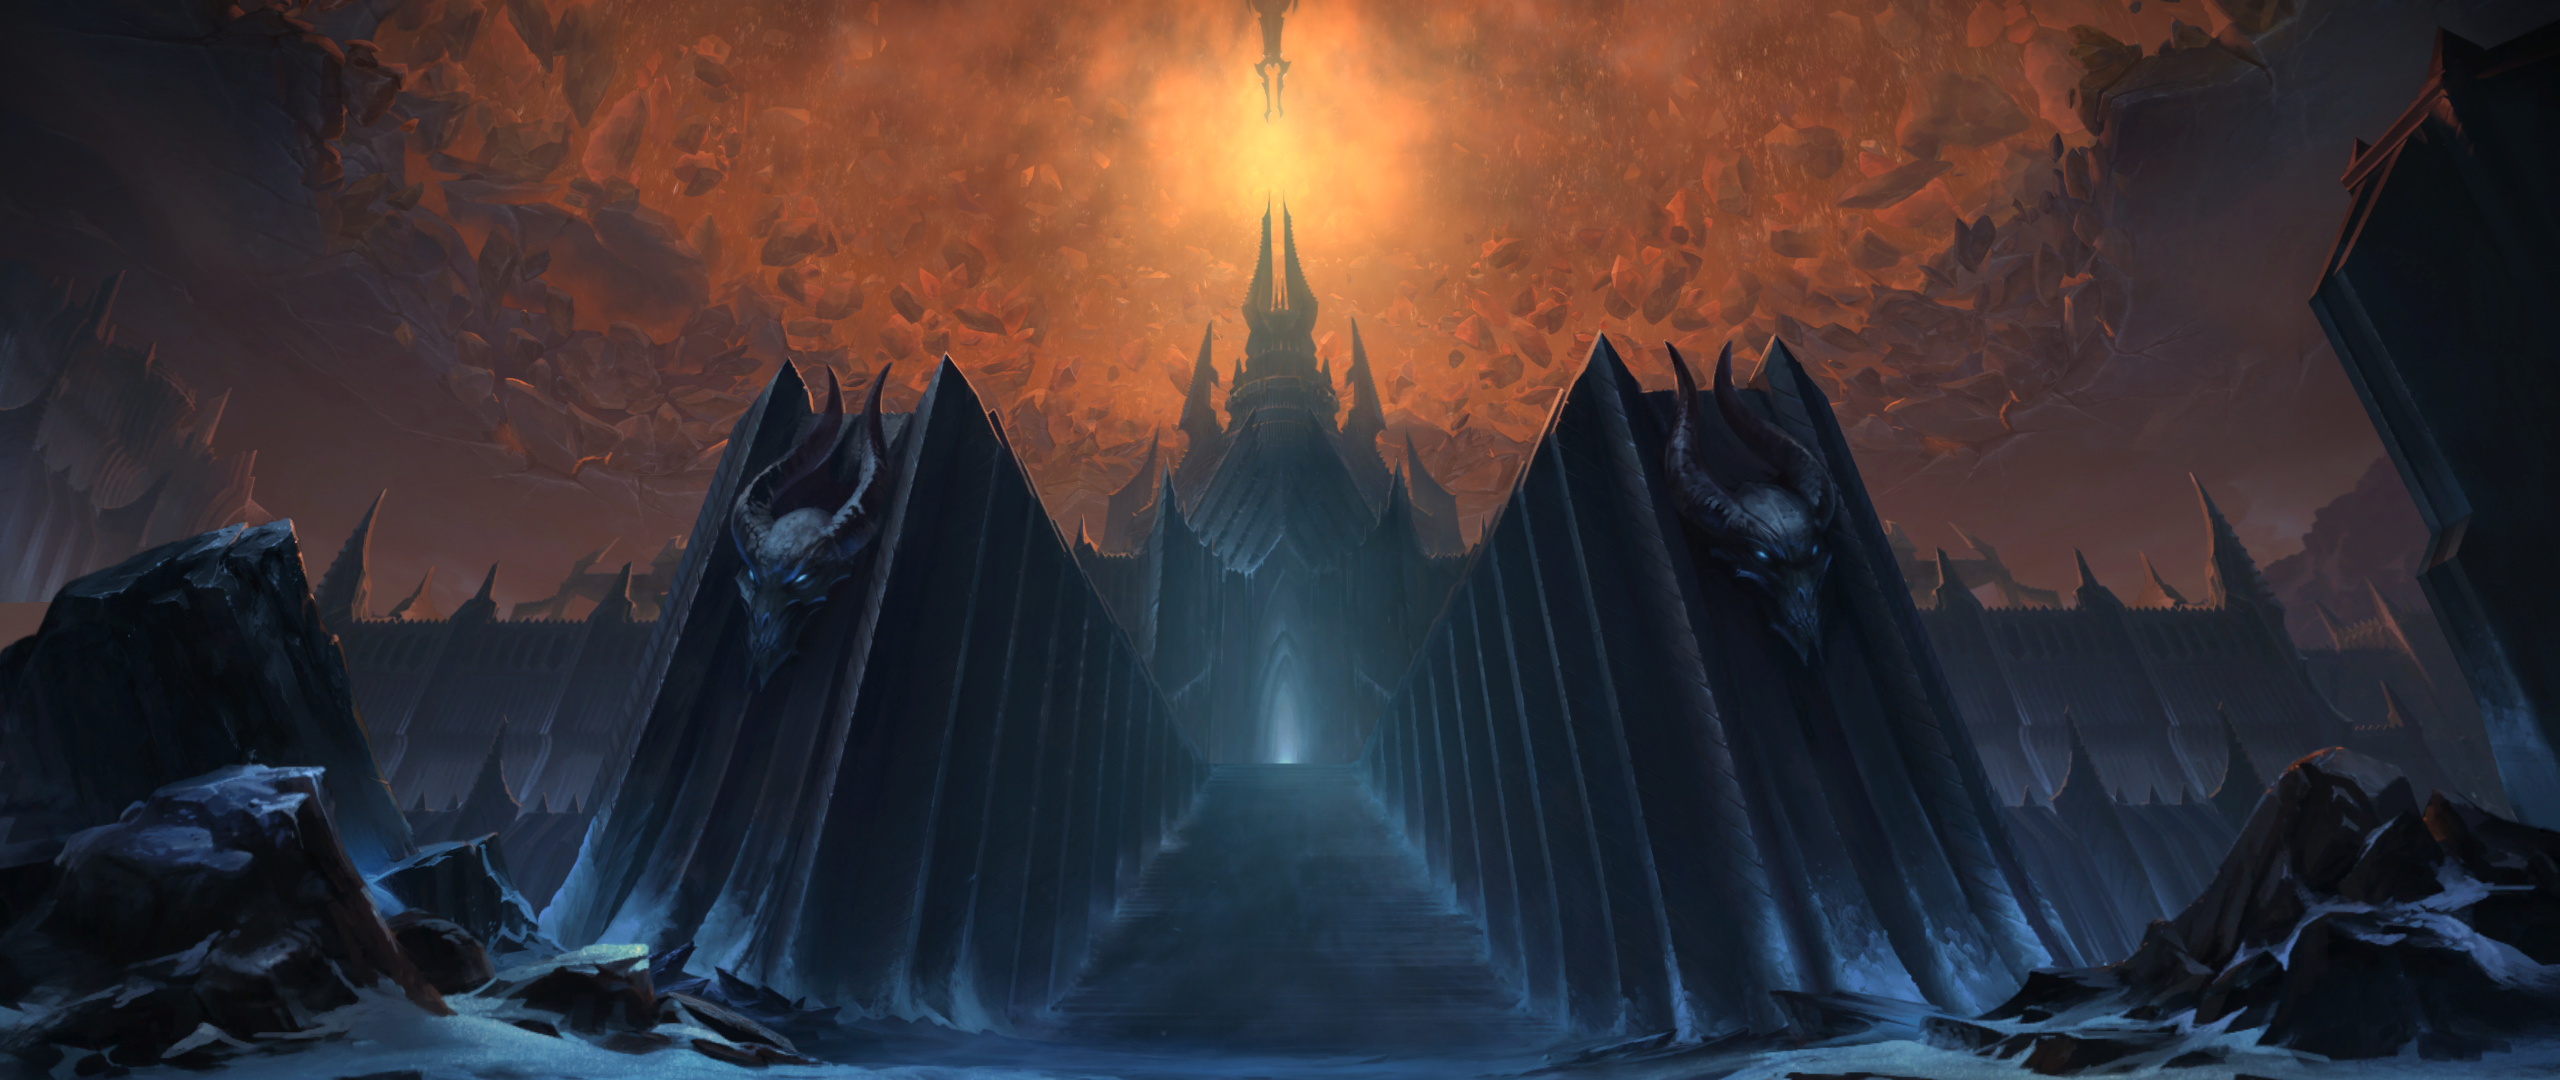 New World of Warcraft: Shadowlands Login Screen and Title Music - Through  the Roof of the World - Noticias de Wowhead